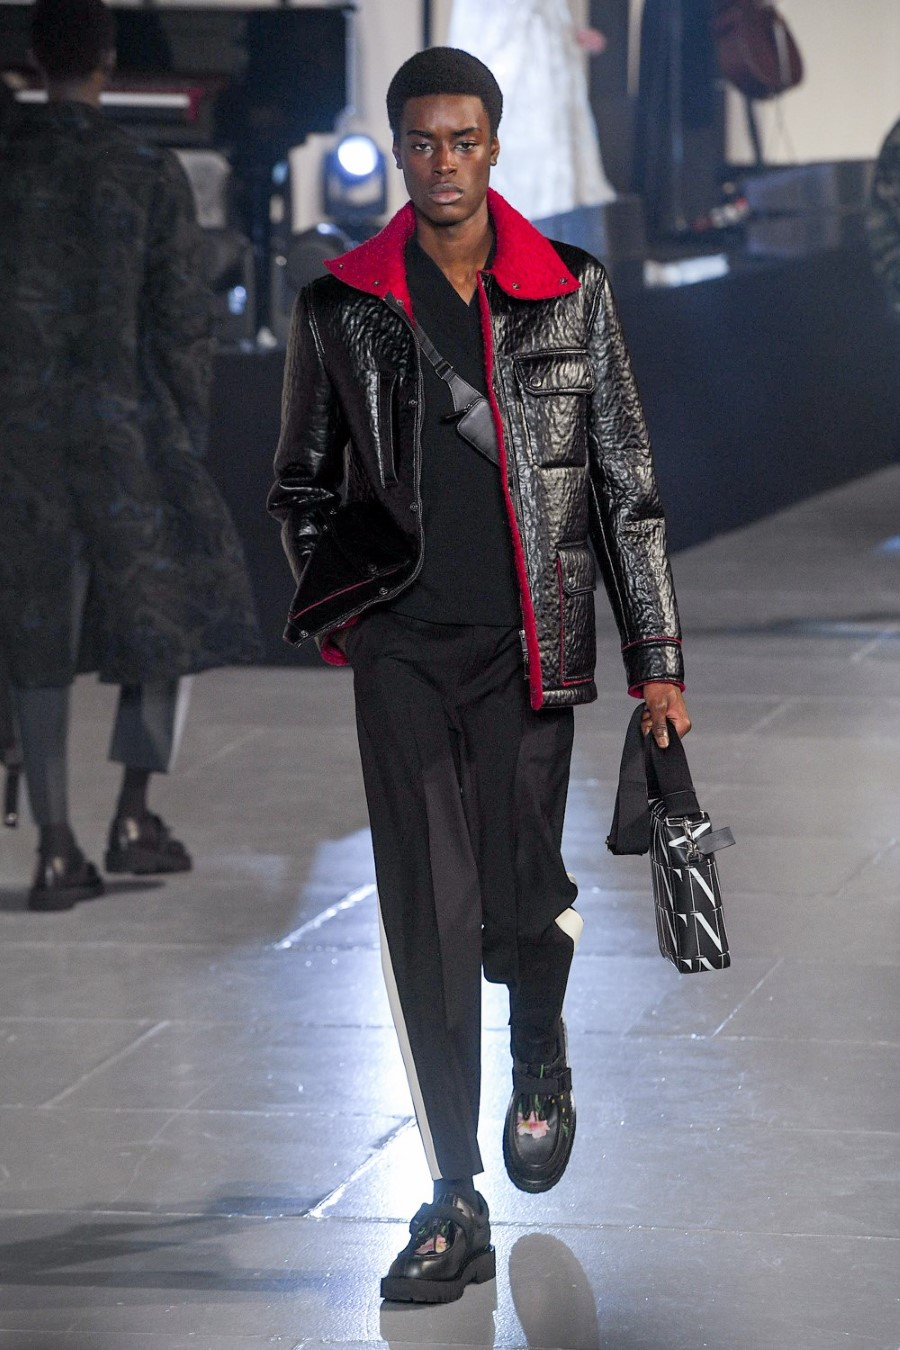 Valentino - Fall Winter 2020 - Paris Fashion Week Men'sValentino - Fall Winter 2020 - Paris Fashion Week Men's